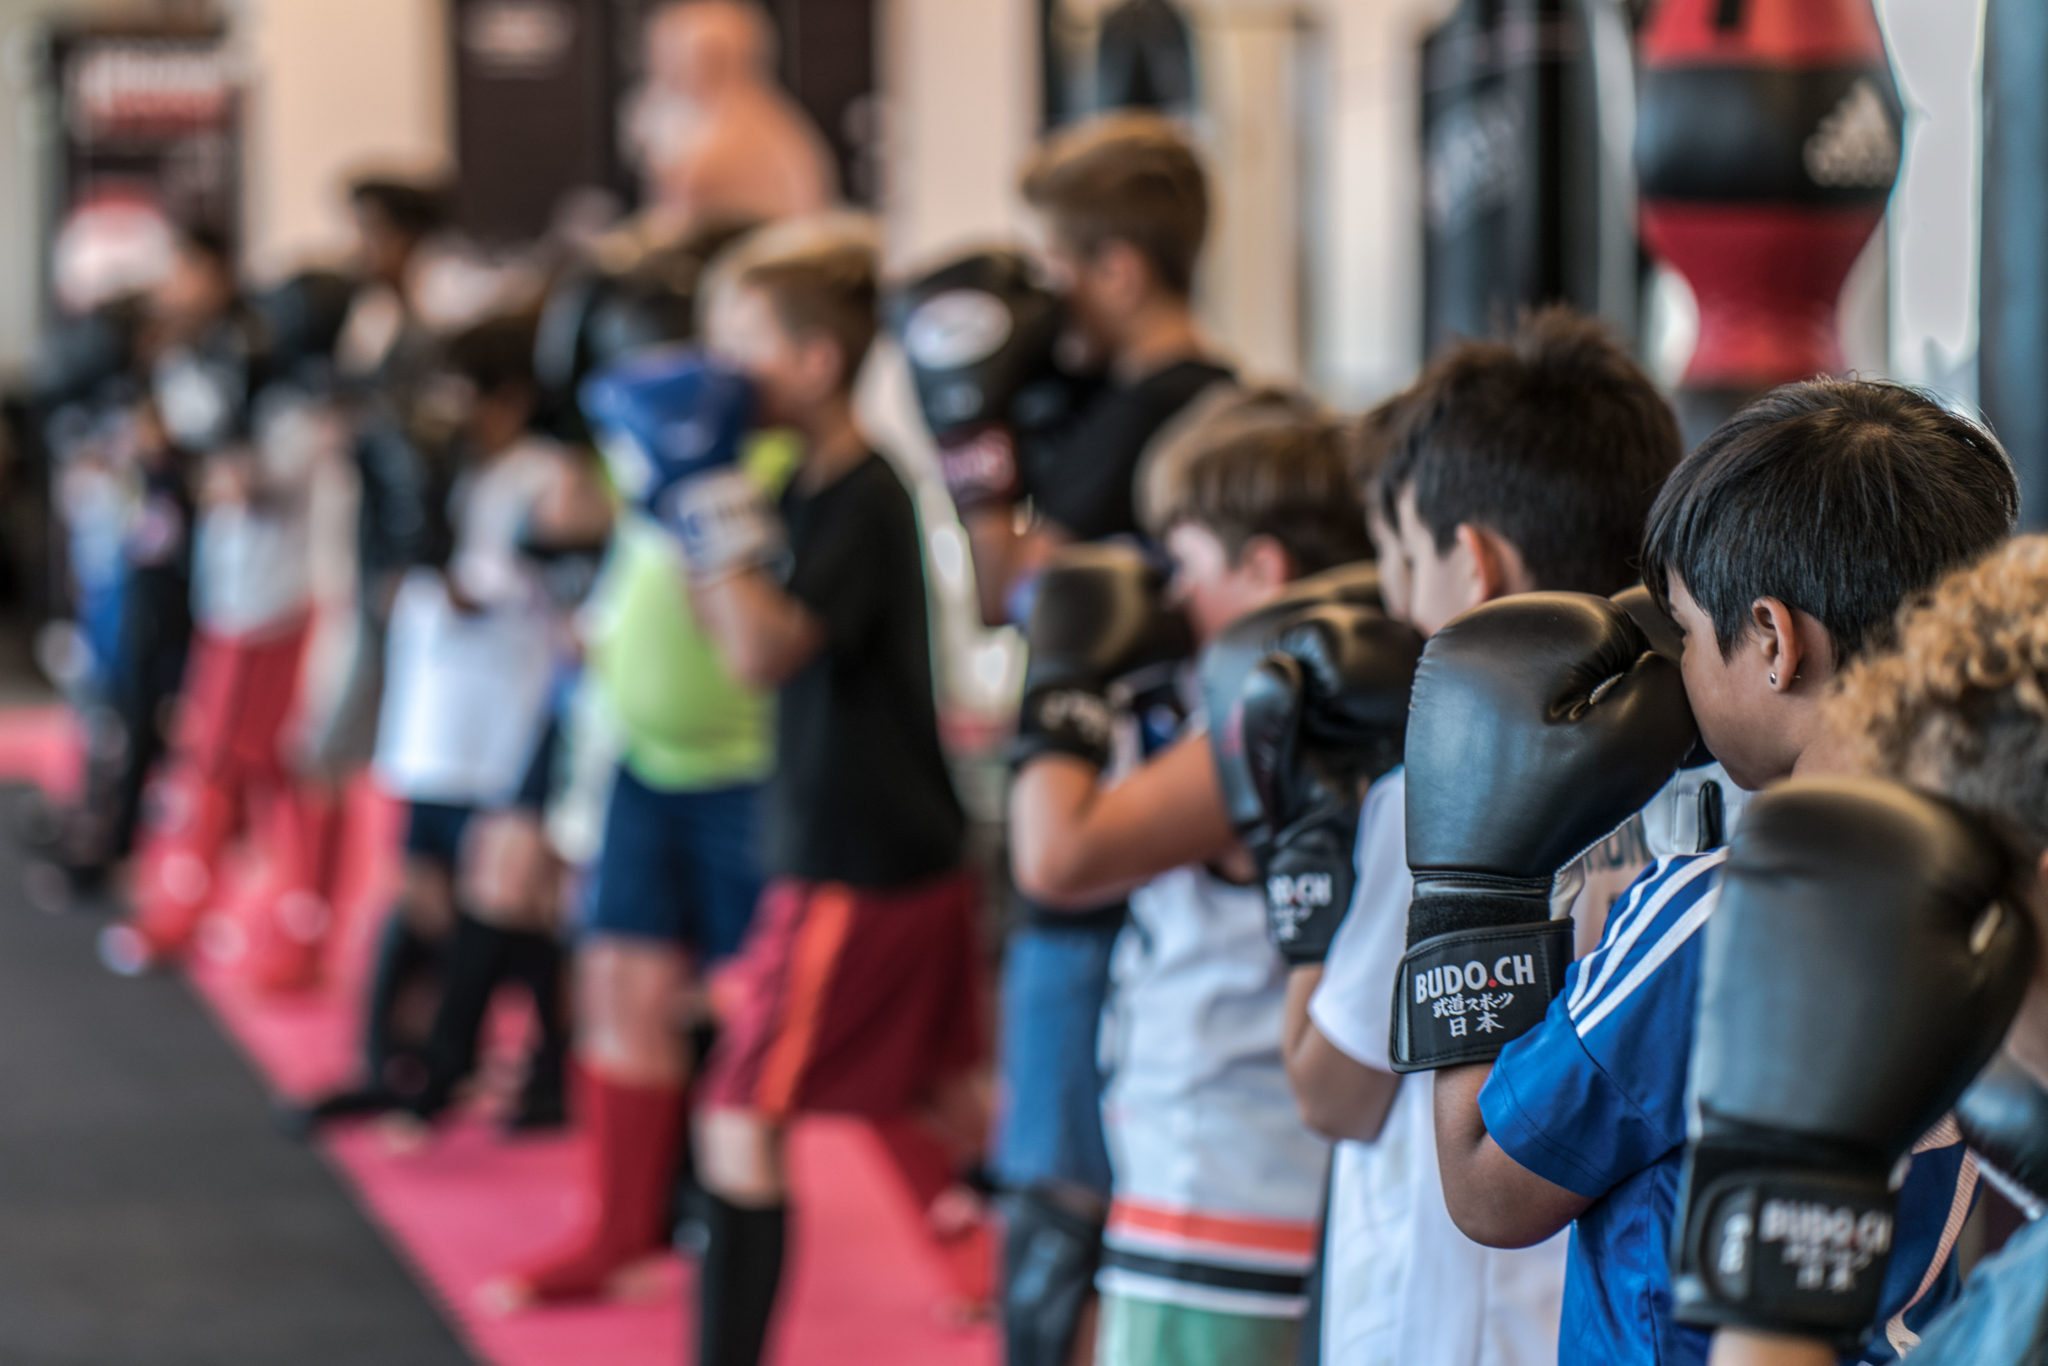 boxworkout ©JLa-photographie Foto by Juerg Lauber